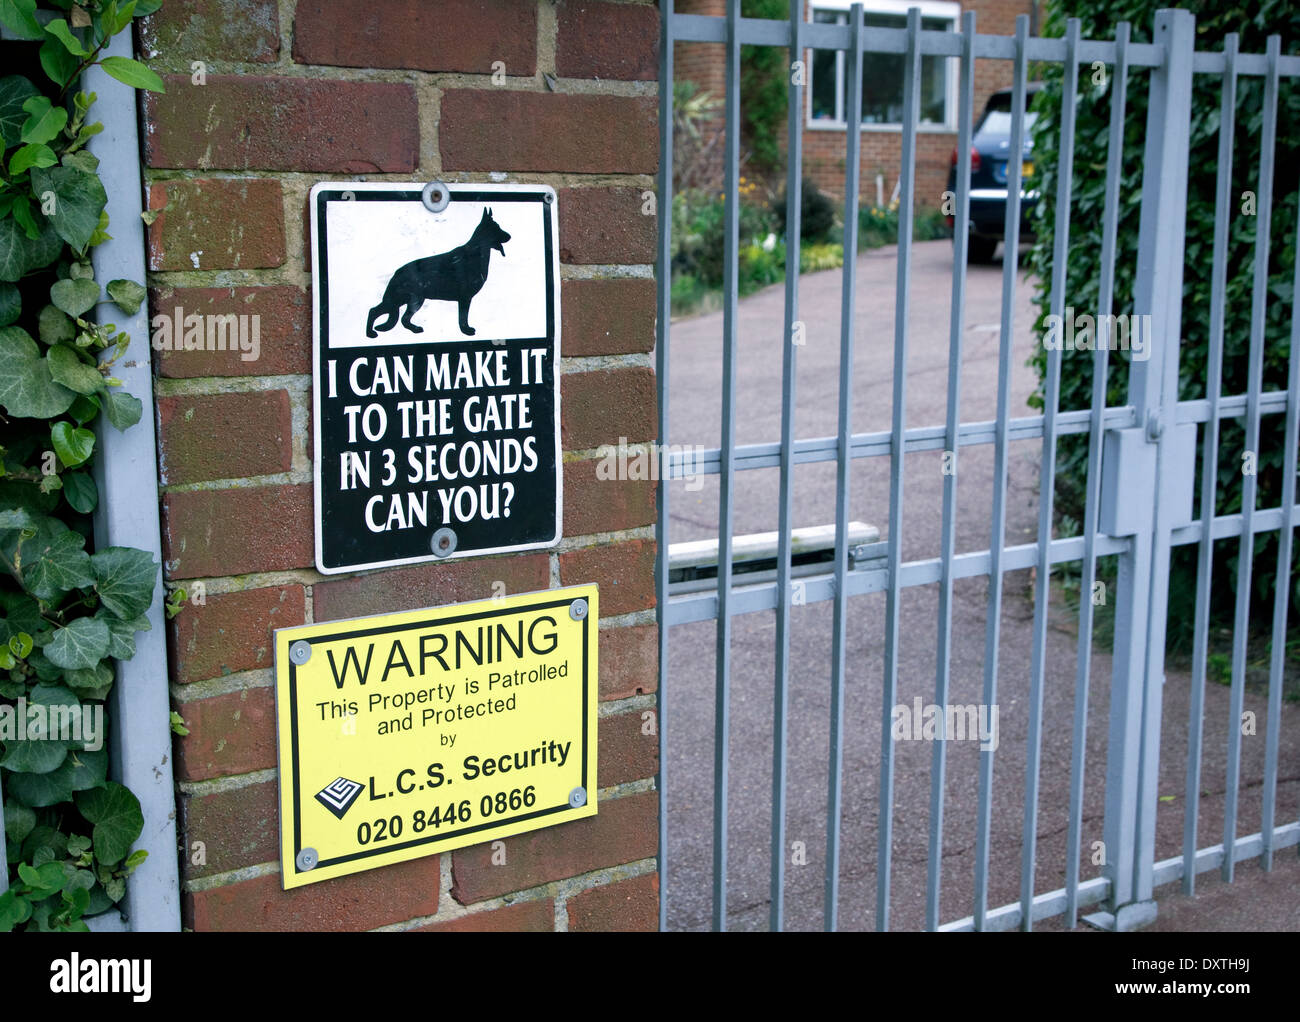 Security warning sign outside house in wealthy area of London - Stock Image